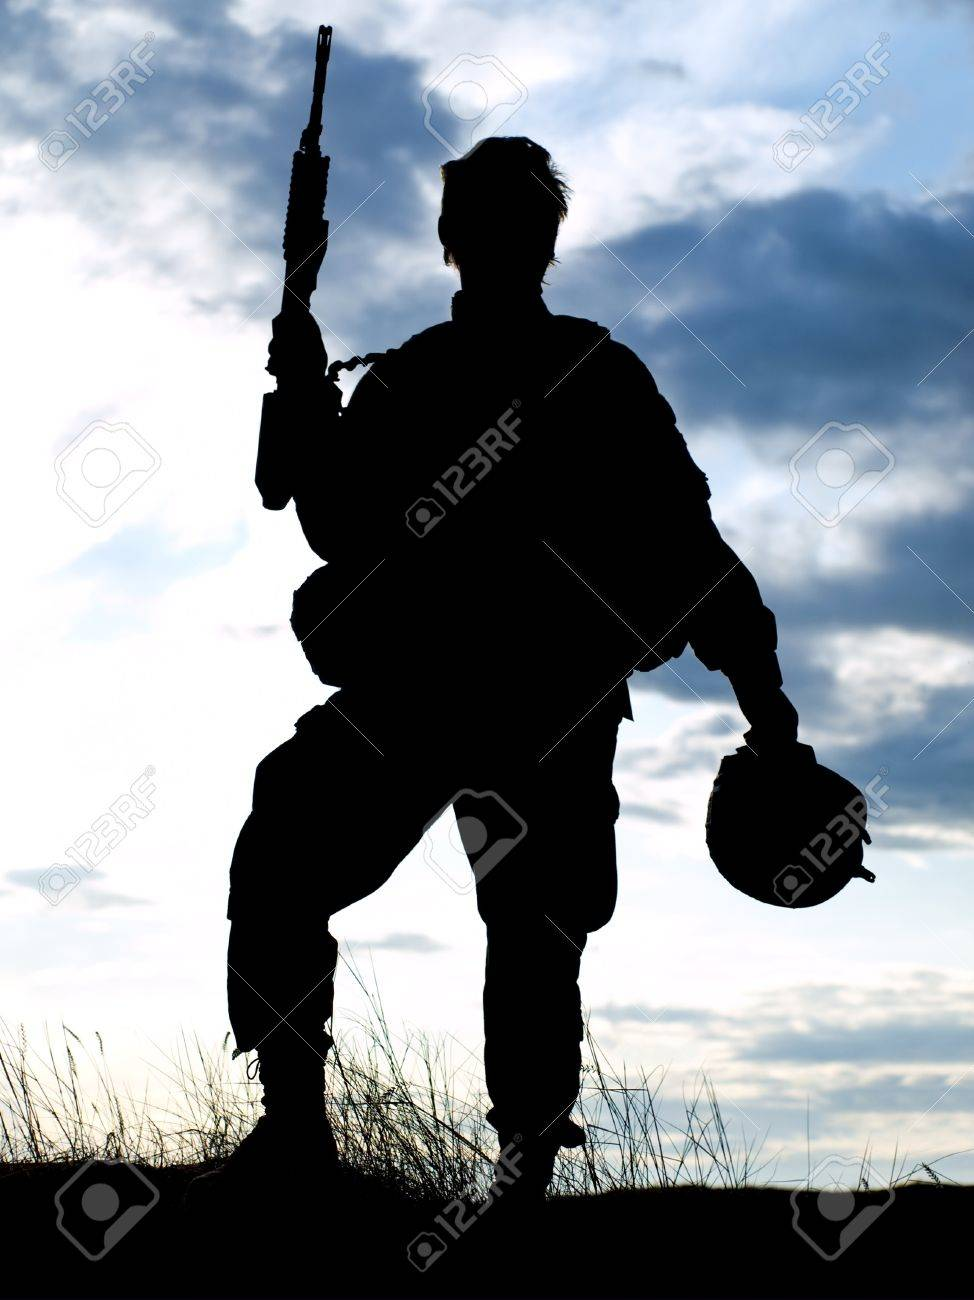 Silhouette of US soldier with rifle against a sunset Stock Photo - 9965768